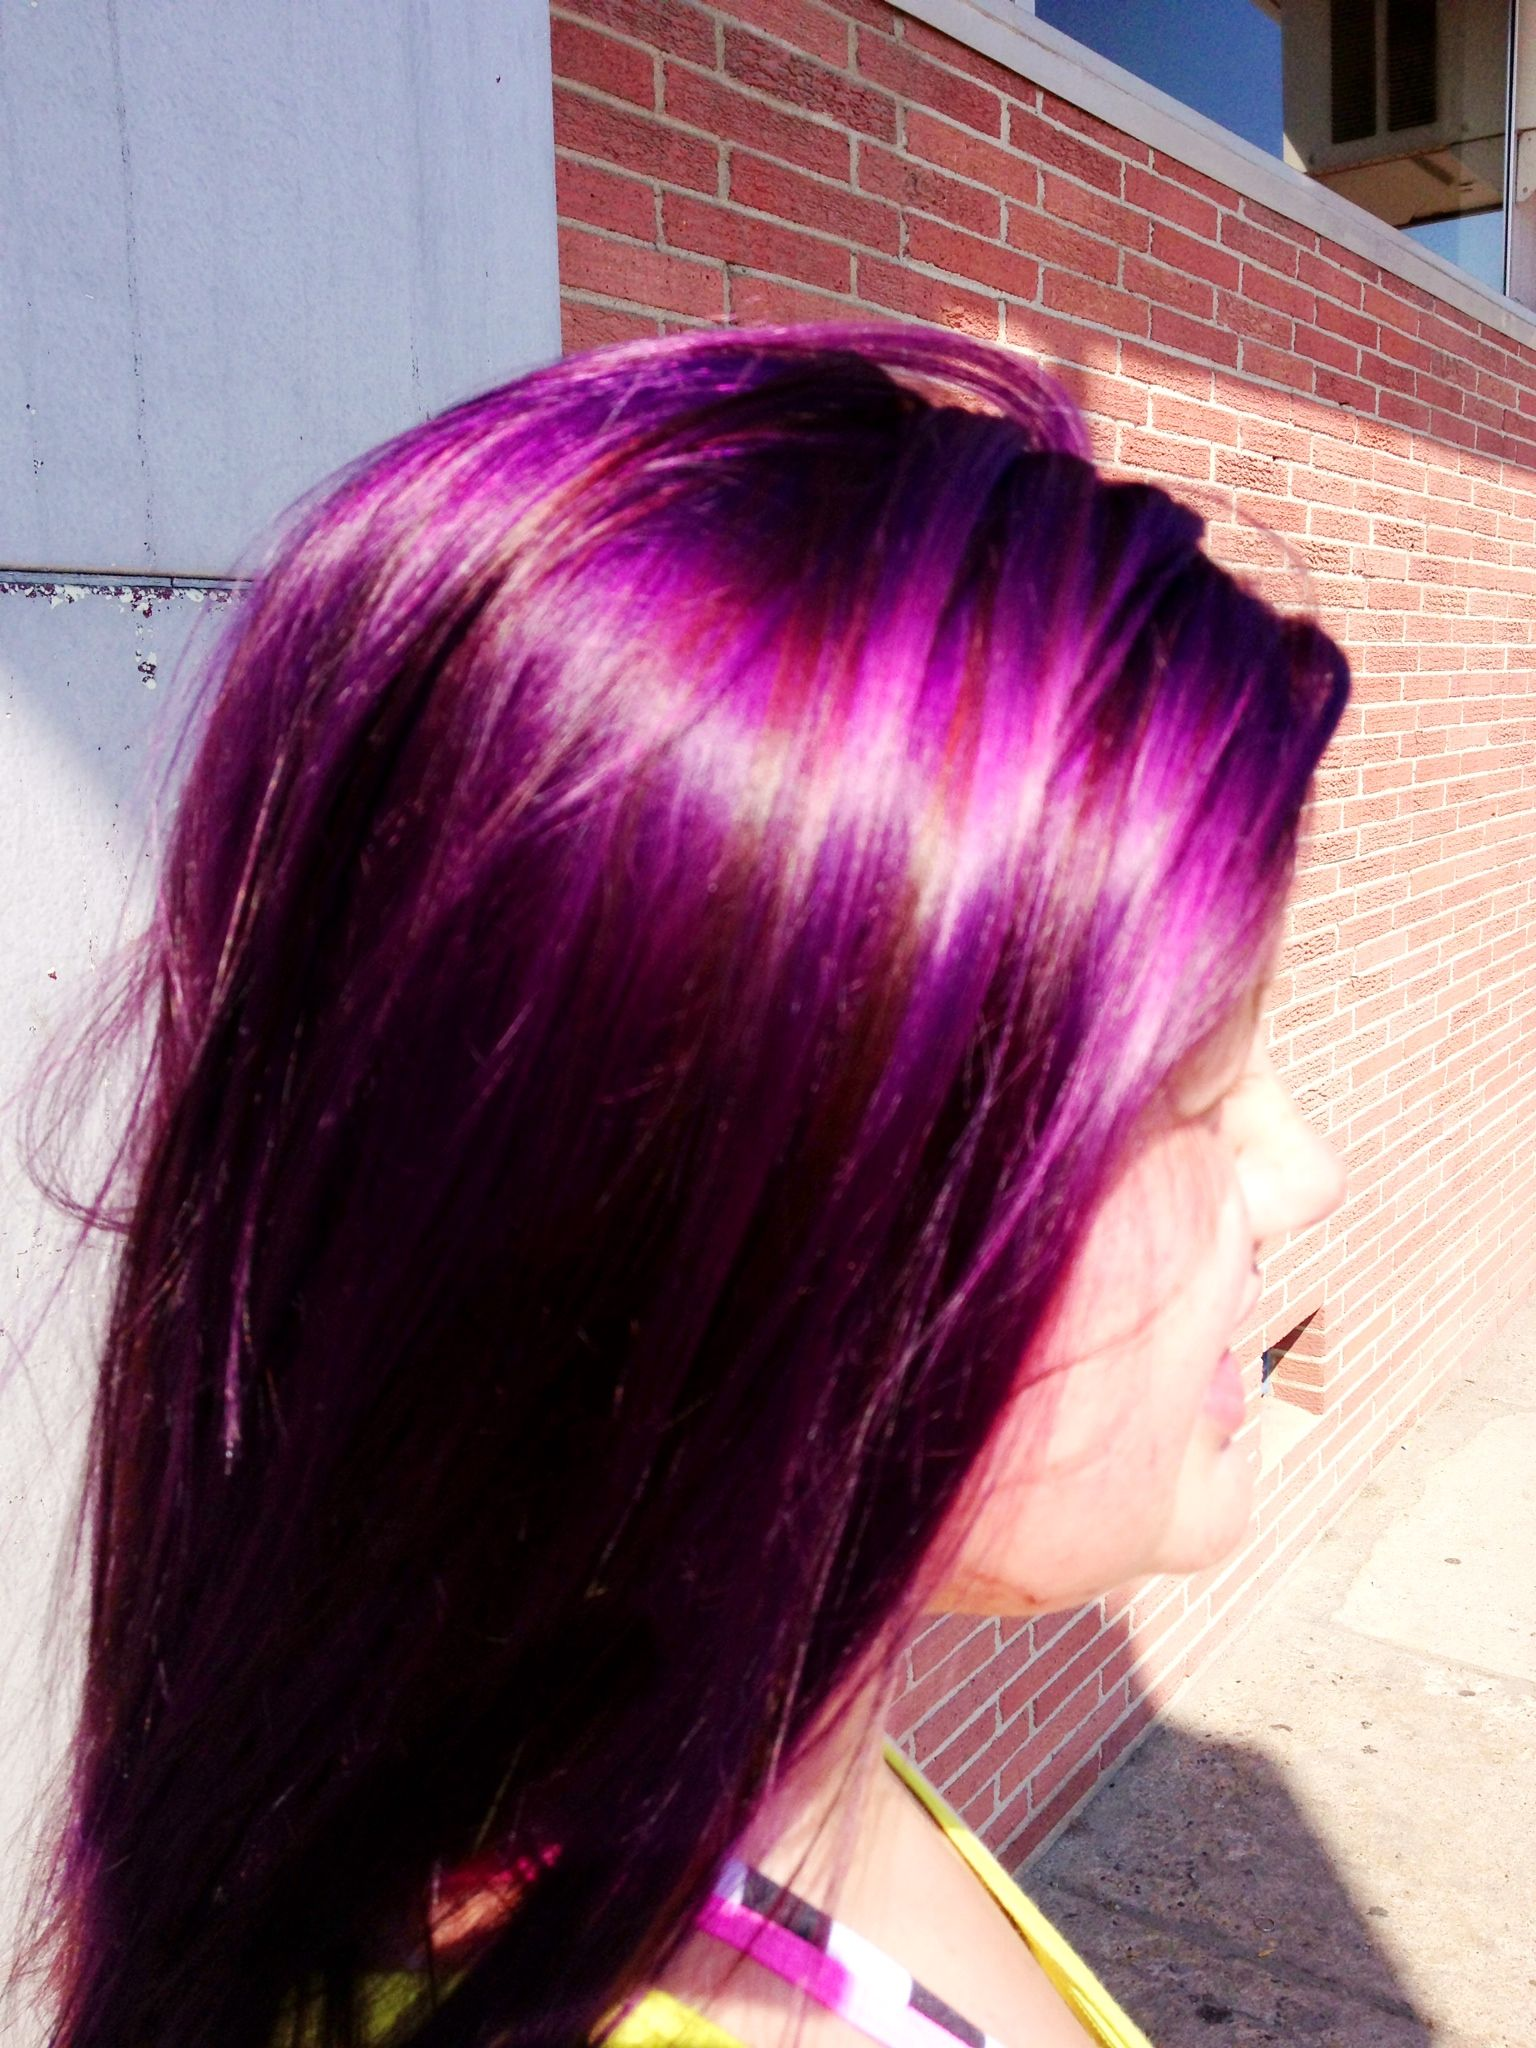 Plum hair | Hair :)) | Pinterest | Blood, Red and Hair